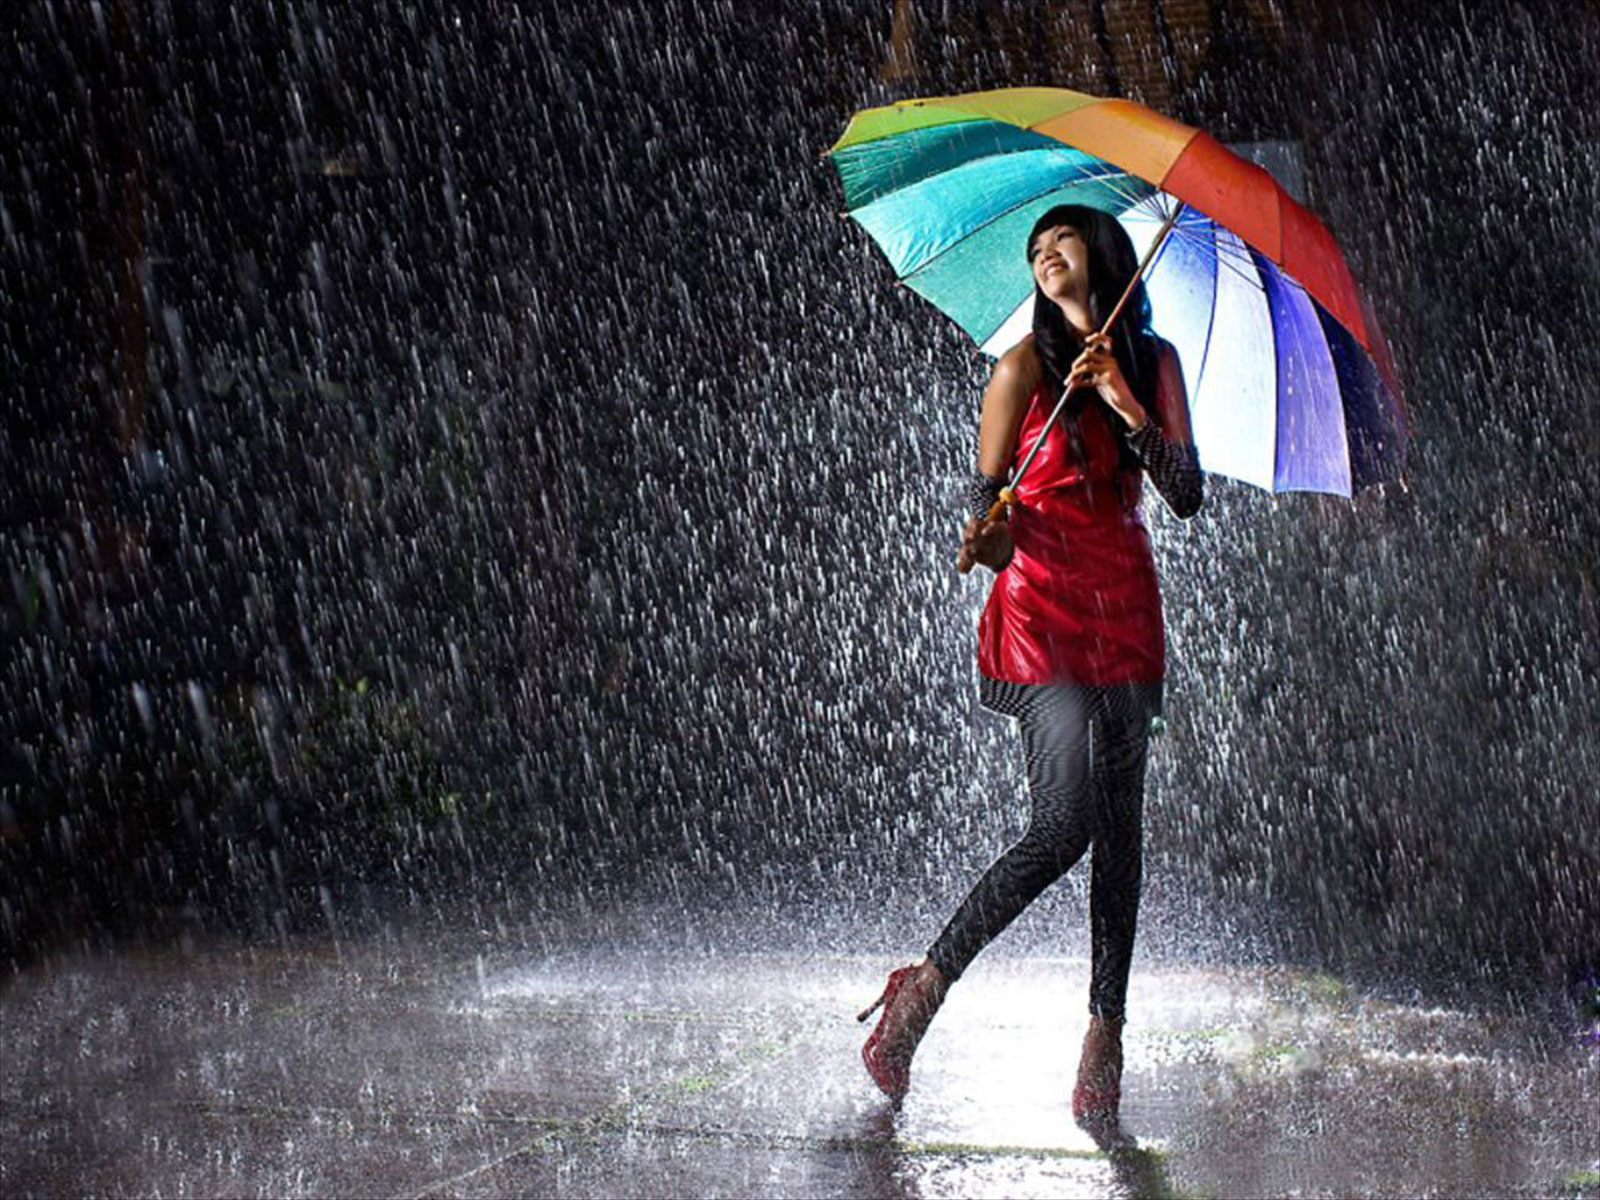 Bambidkar images 7007814 girl in rain hd wallpaper HD wallpaper and background photos